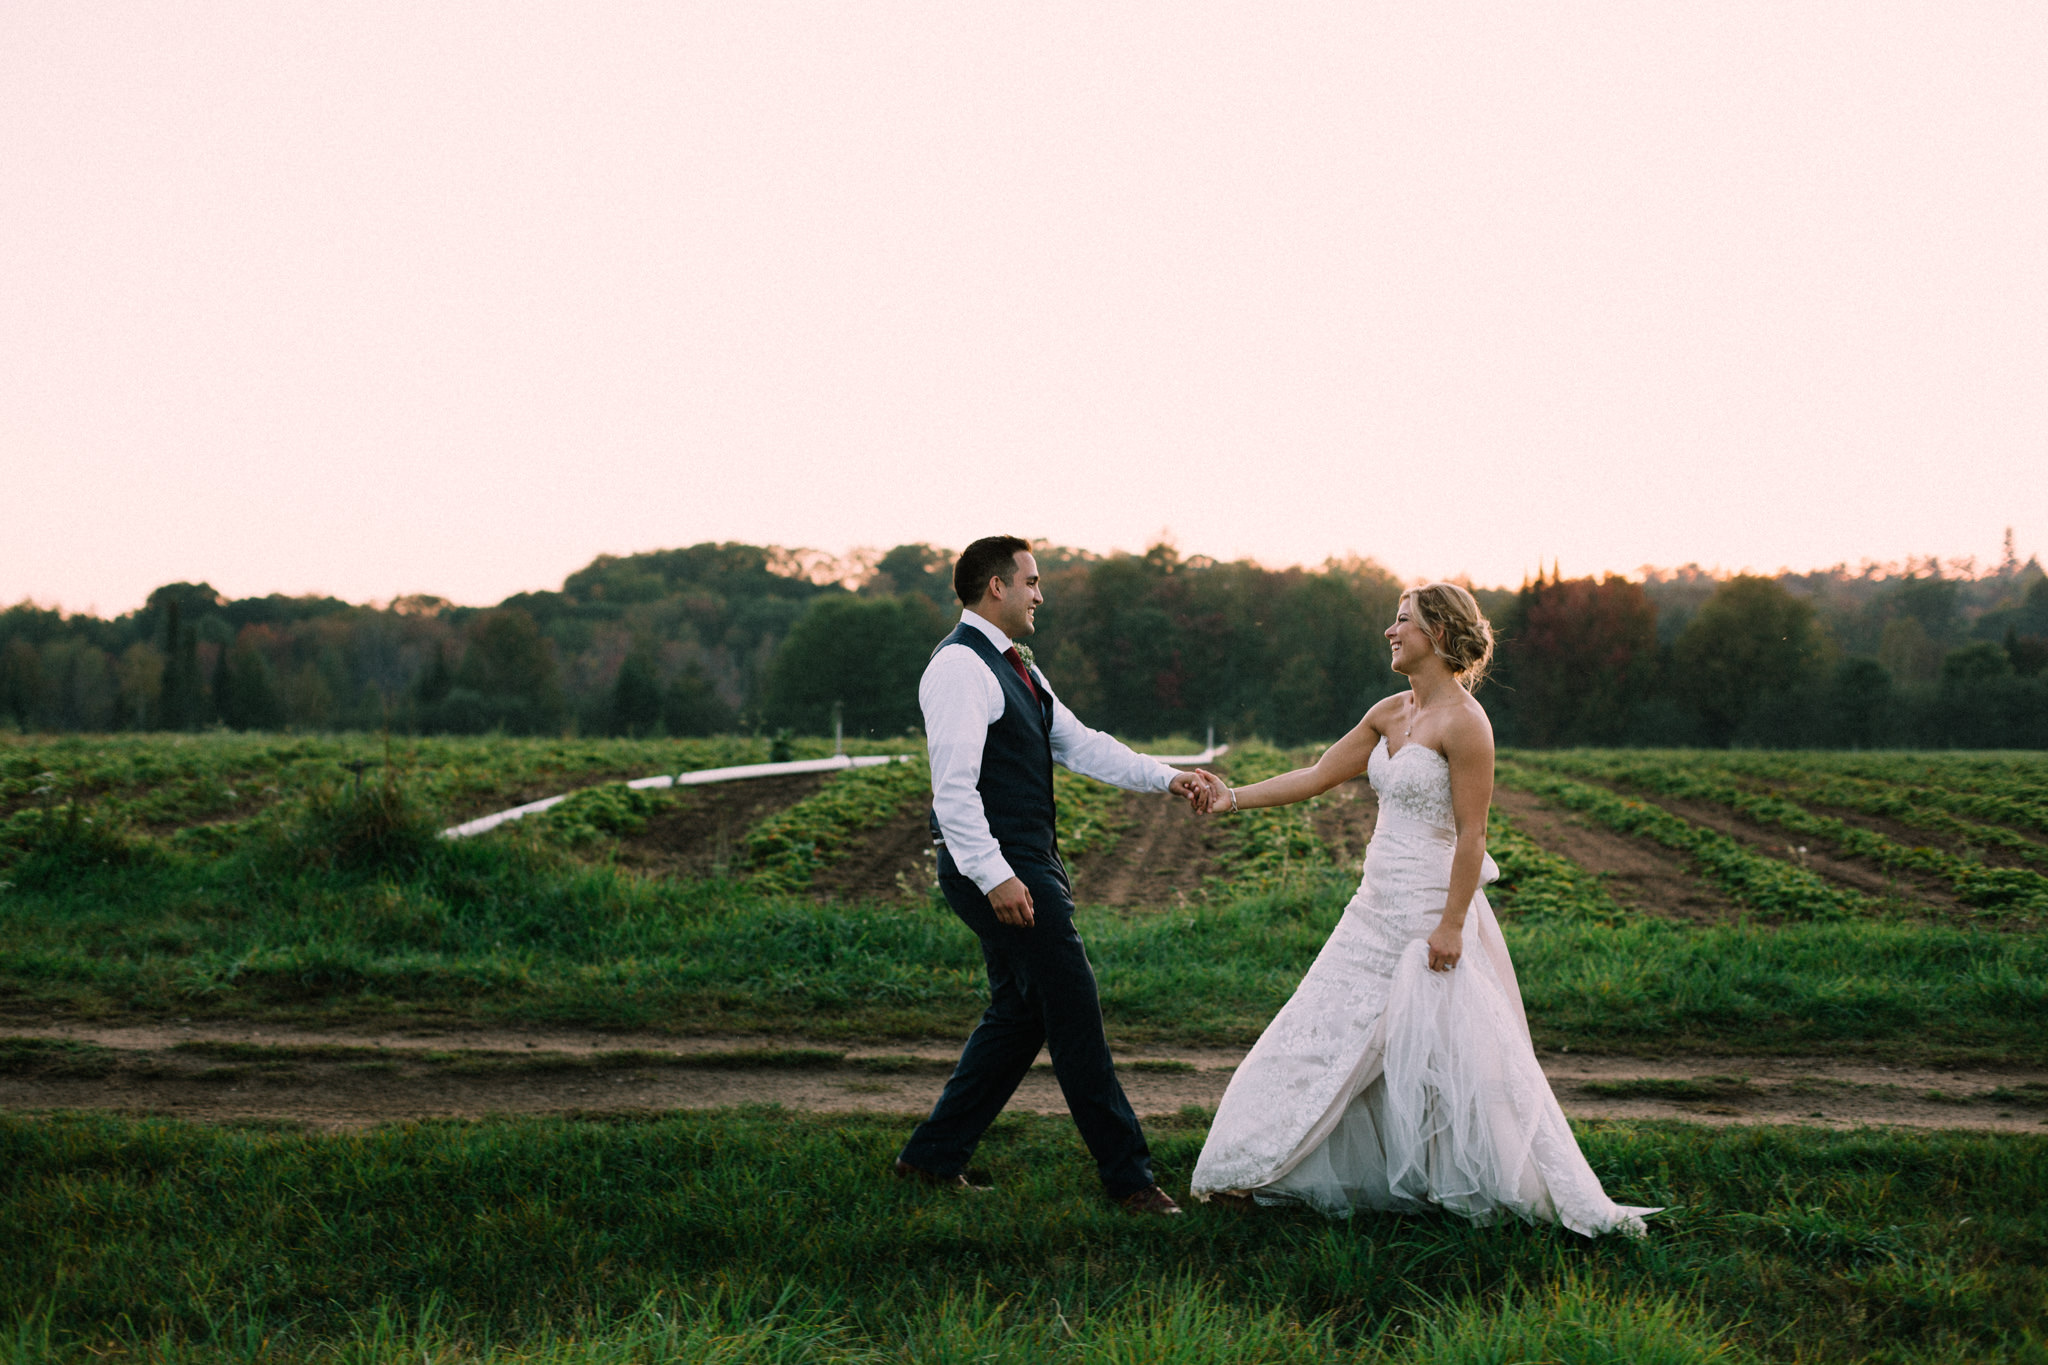 bride and groom dancing on a farm field